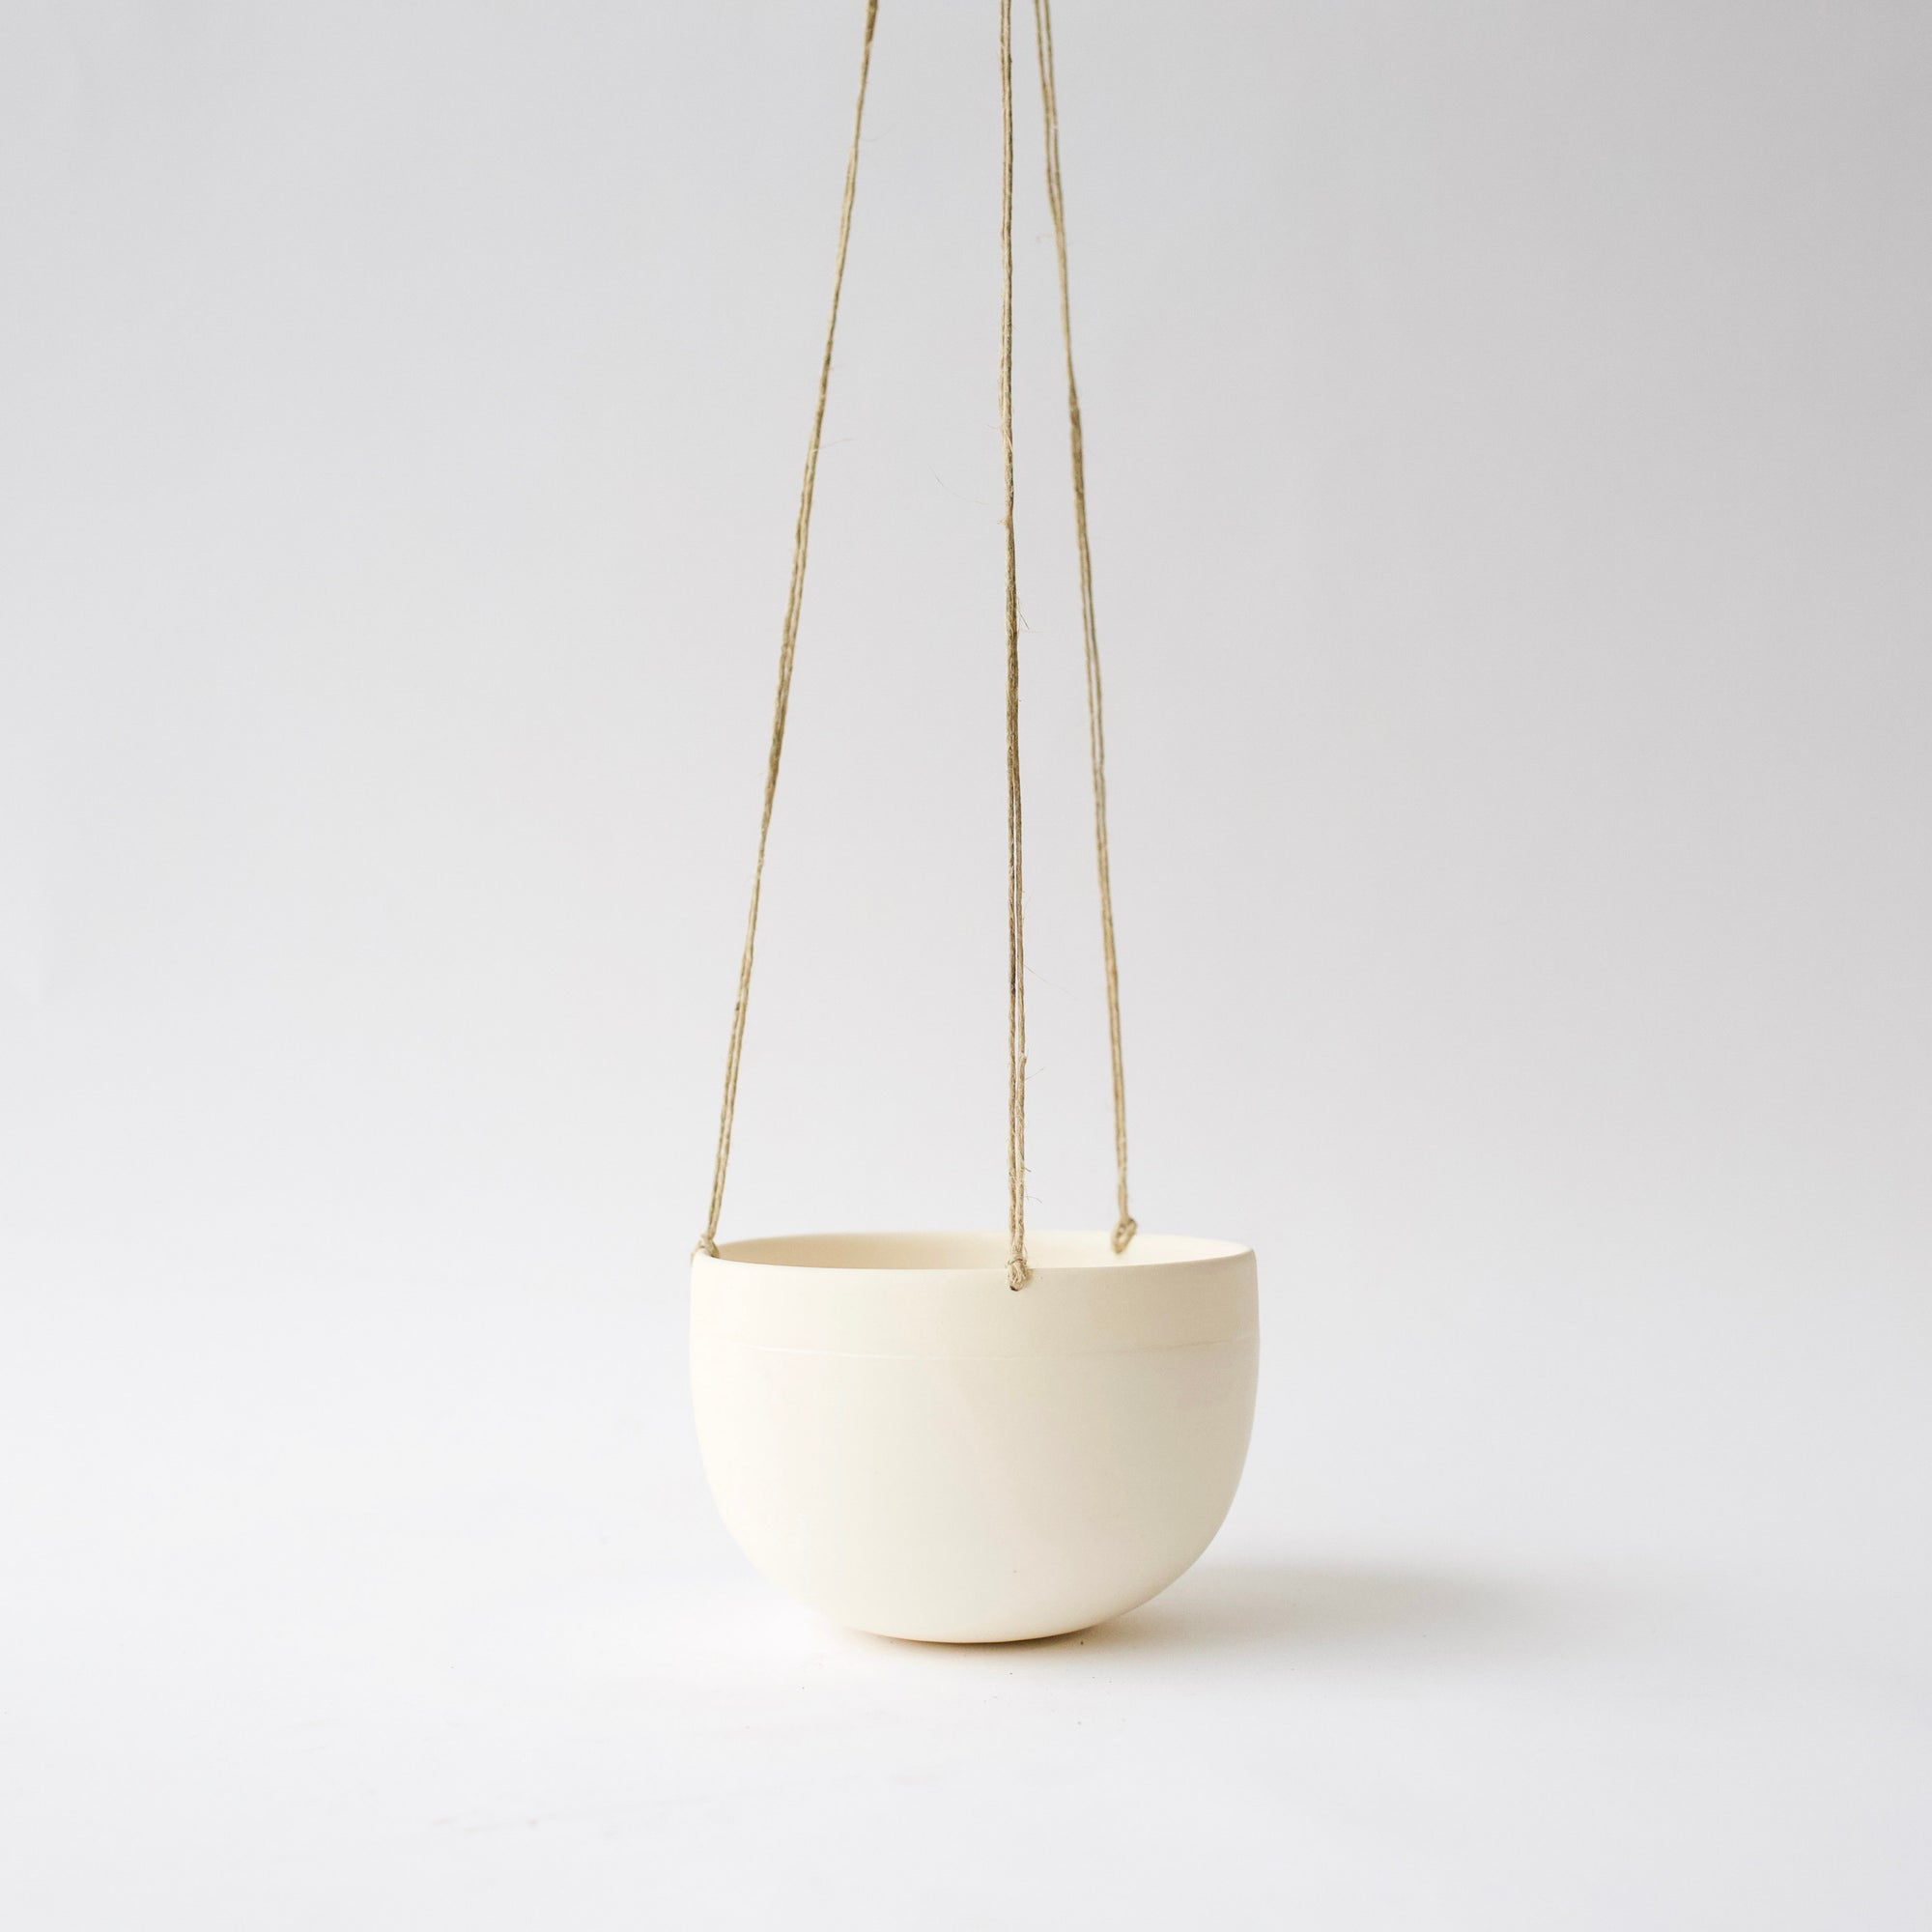 Medium Hanging Planter - White